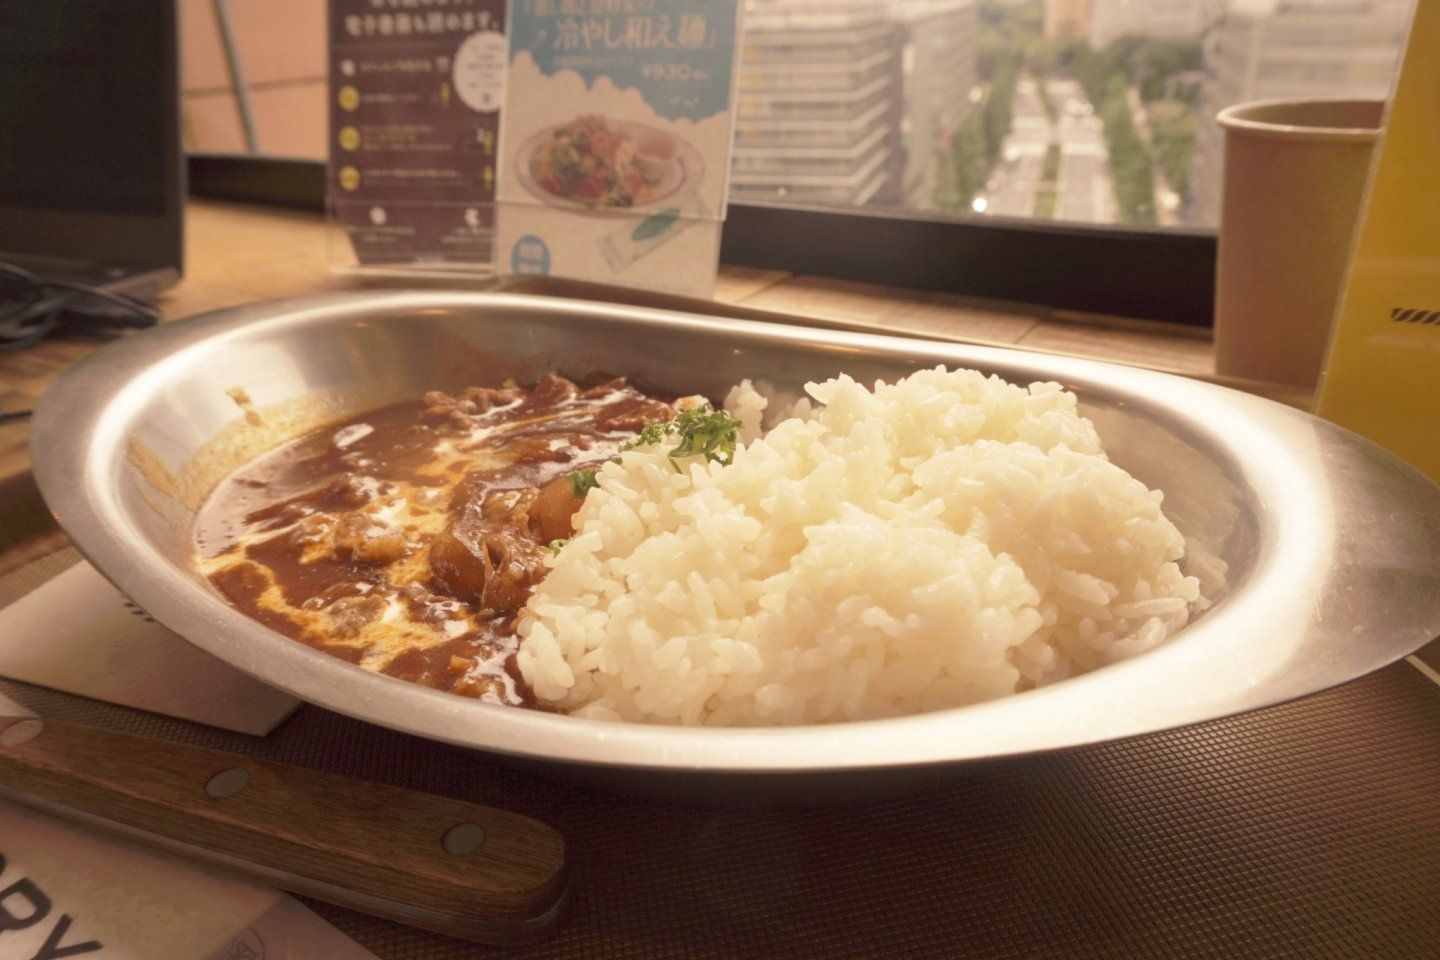 Hashed beef with rice